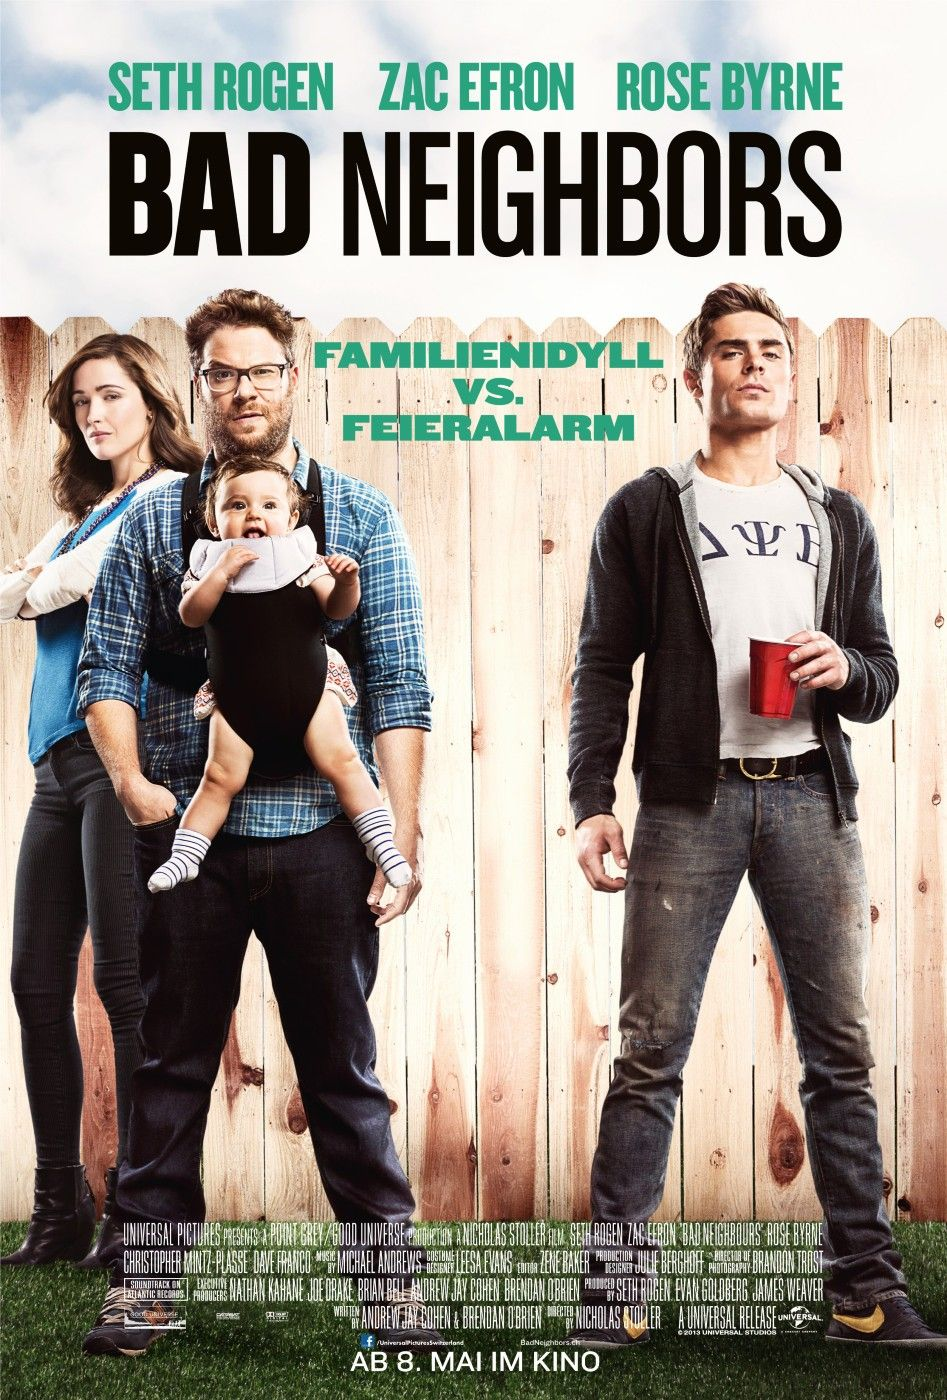 Neighbors 2014 Bad Neighbors Movies 2014 Pinoy Movies